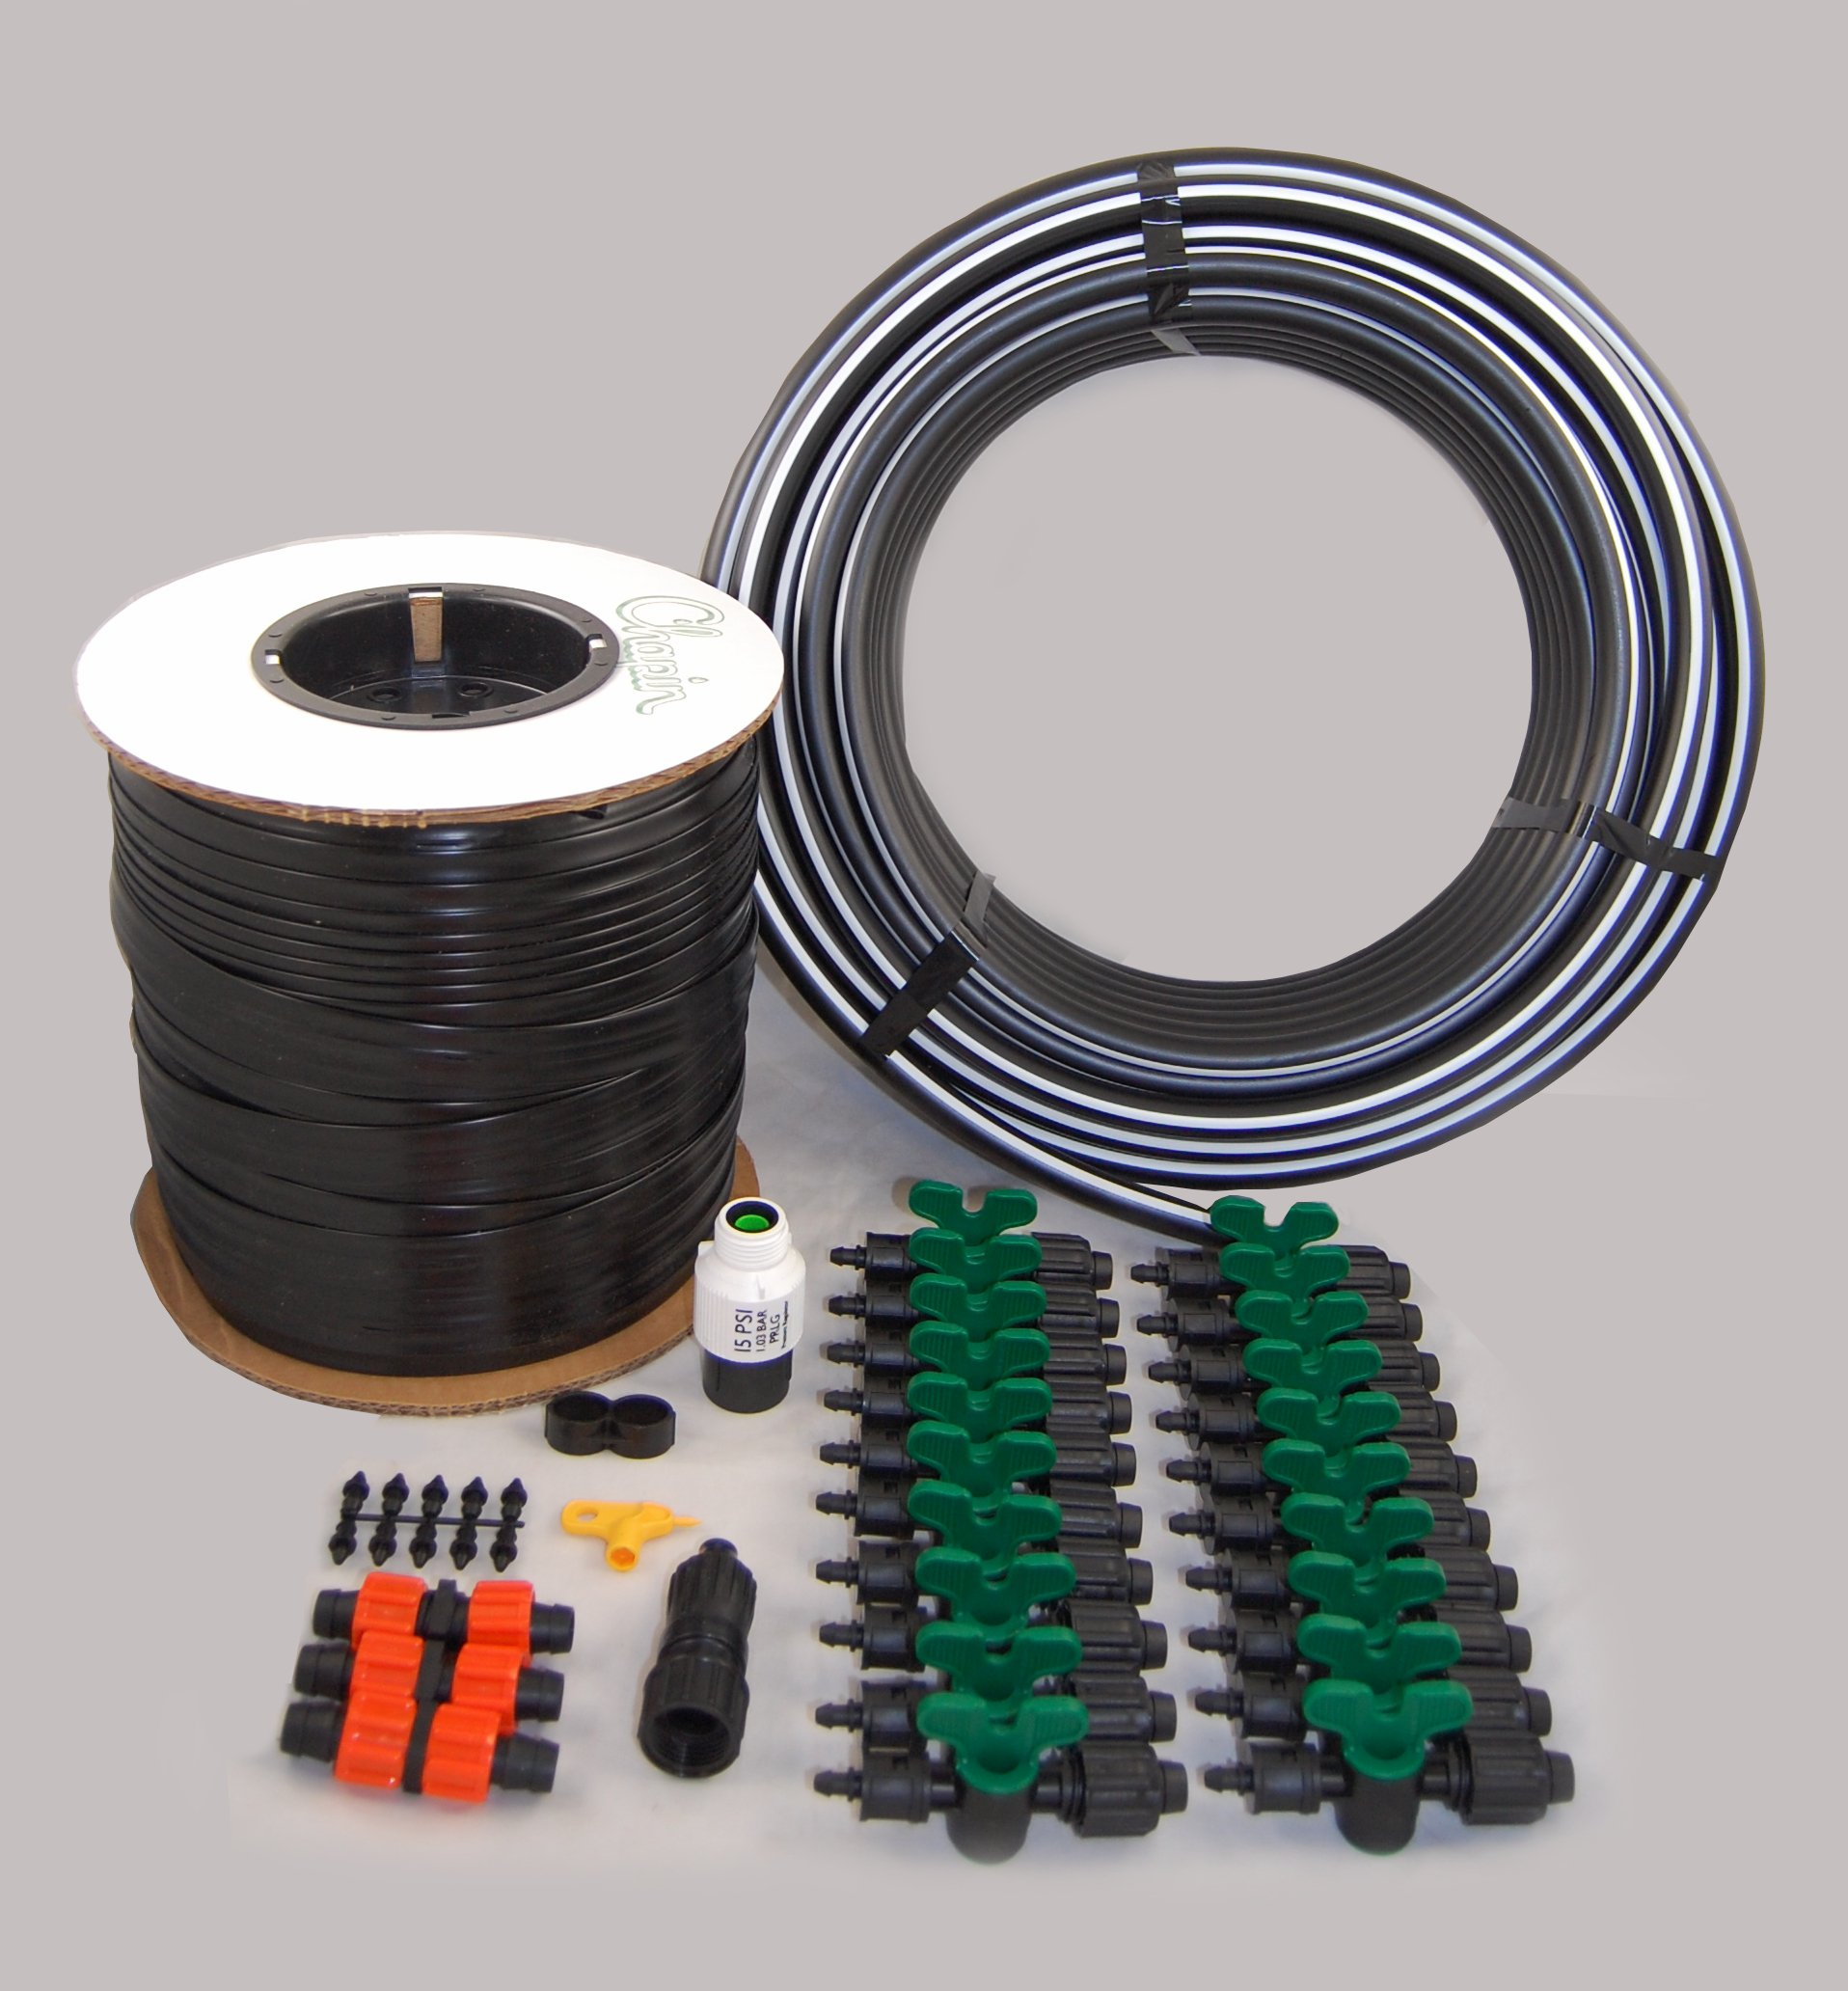 Vegetable Garden Drip Kit – 20 Rows x 50 Ft– Watering Garden Drip Irrigation by Grower's Solution